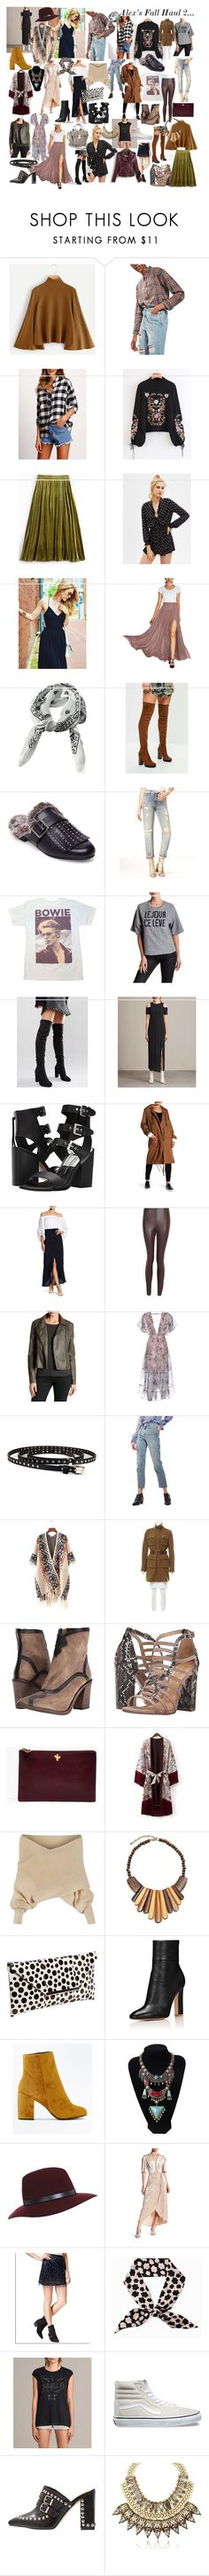 """Alex Fall Haul 2..."" by charlotteanndove on Polyvore featuring Topshop, Missguided, Design Lab, Sundry, Daisy Street, AllSaints, Dolce Vita, endless rose, Free Press and Schutz"